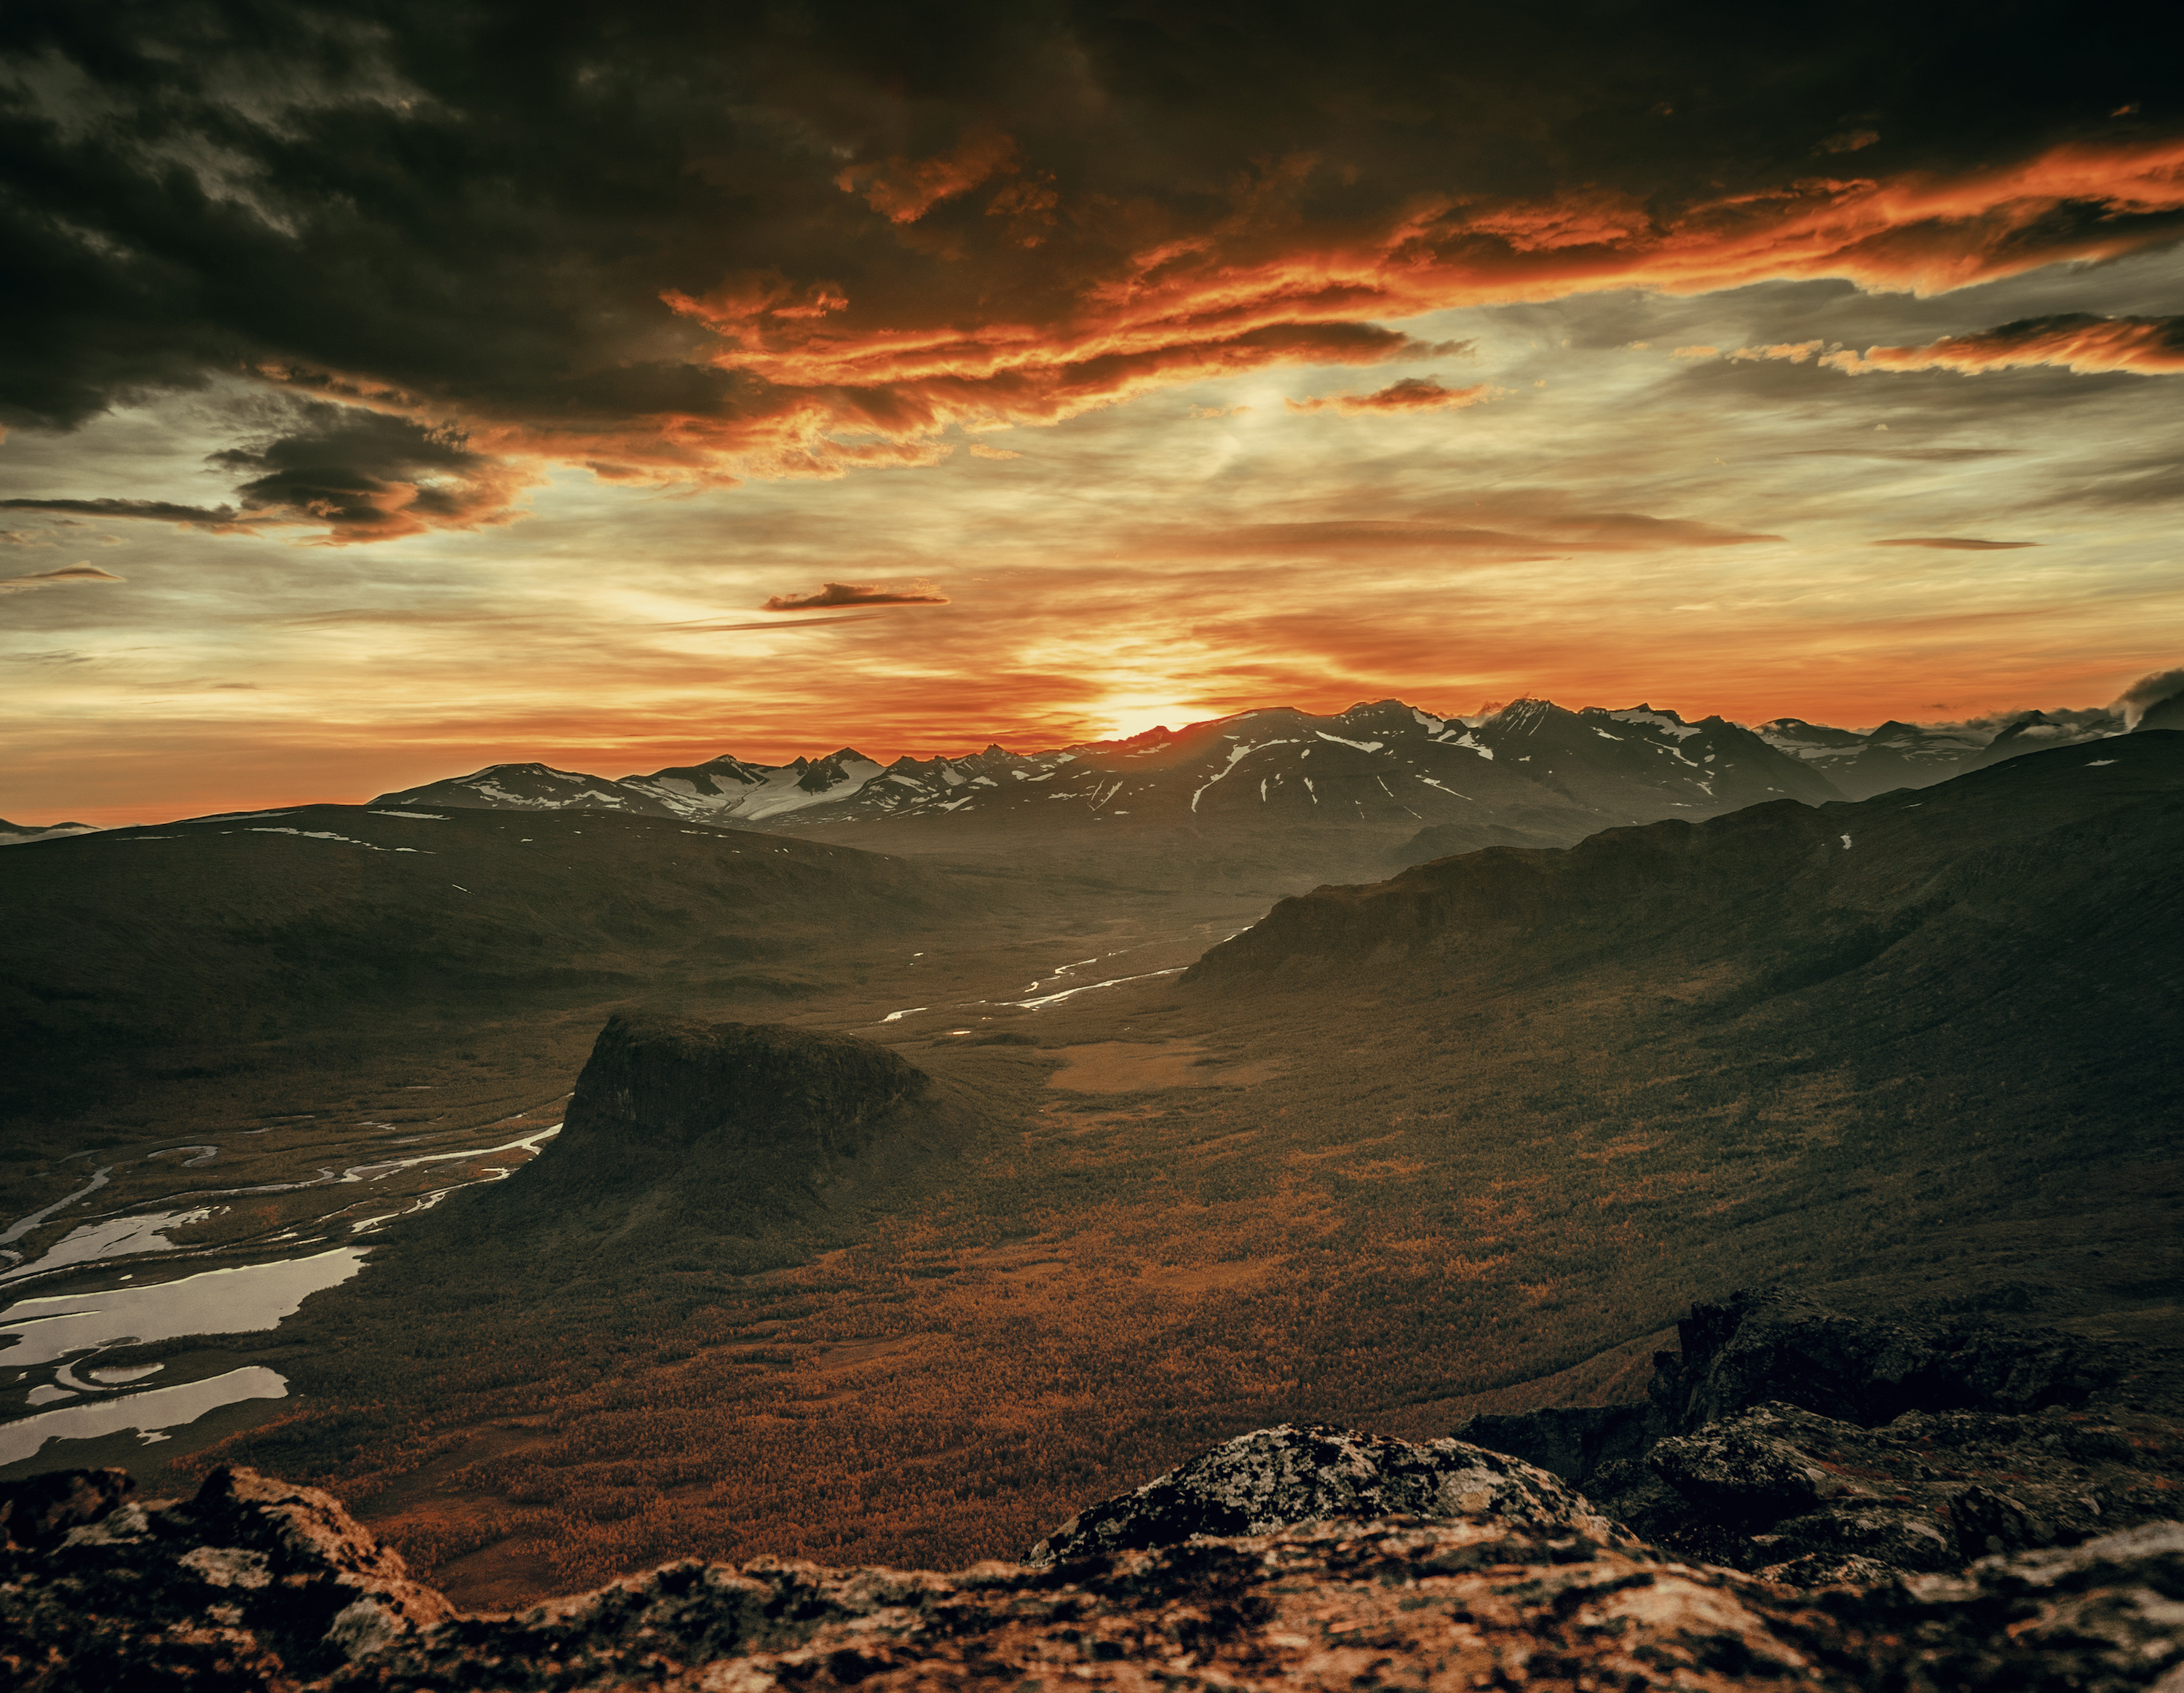 mountain sunset most beautiful picture